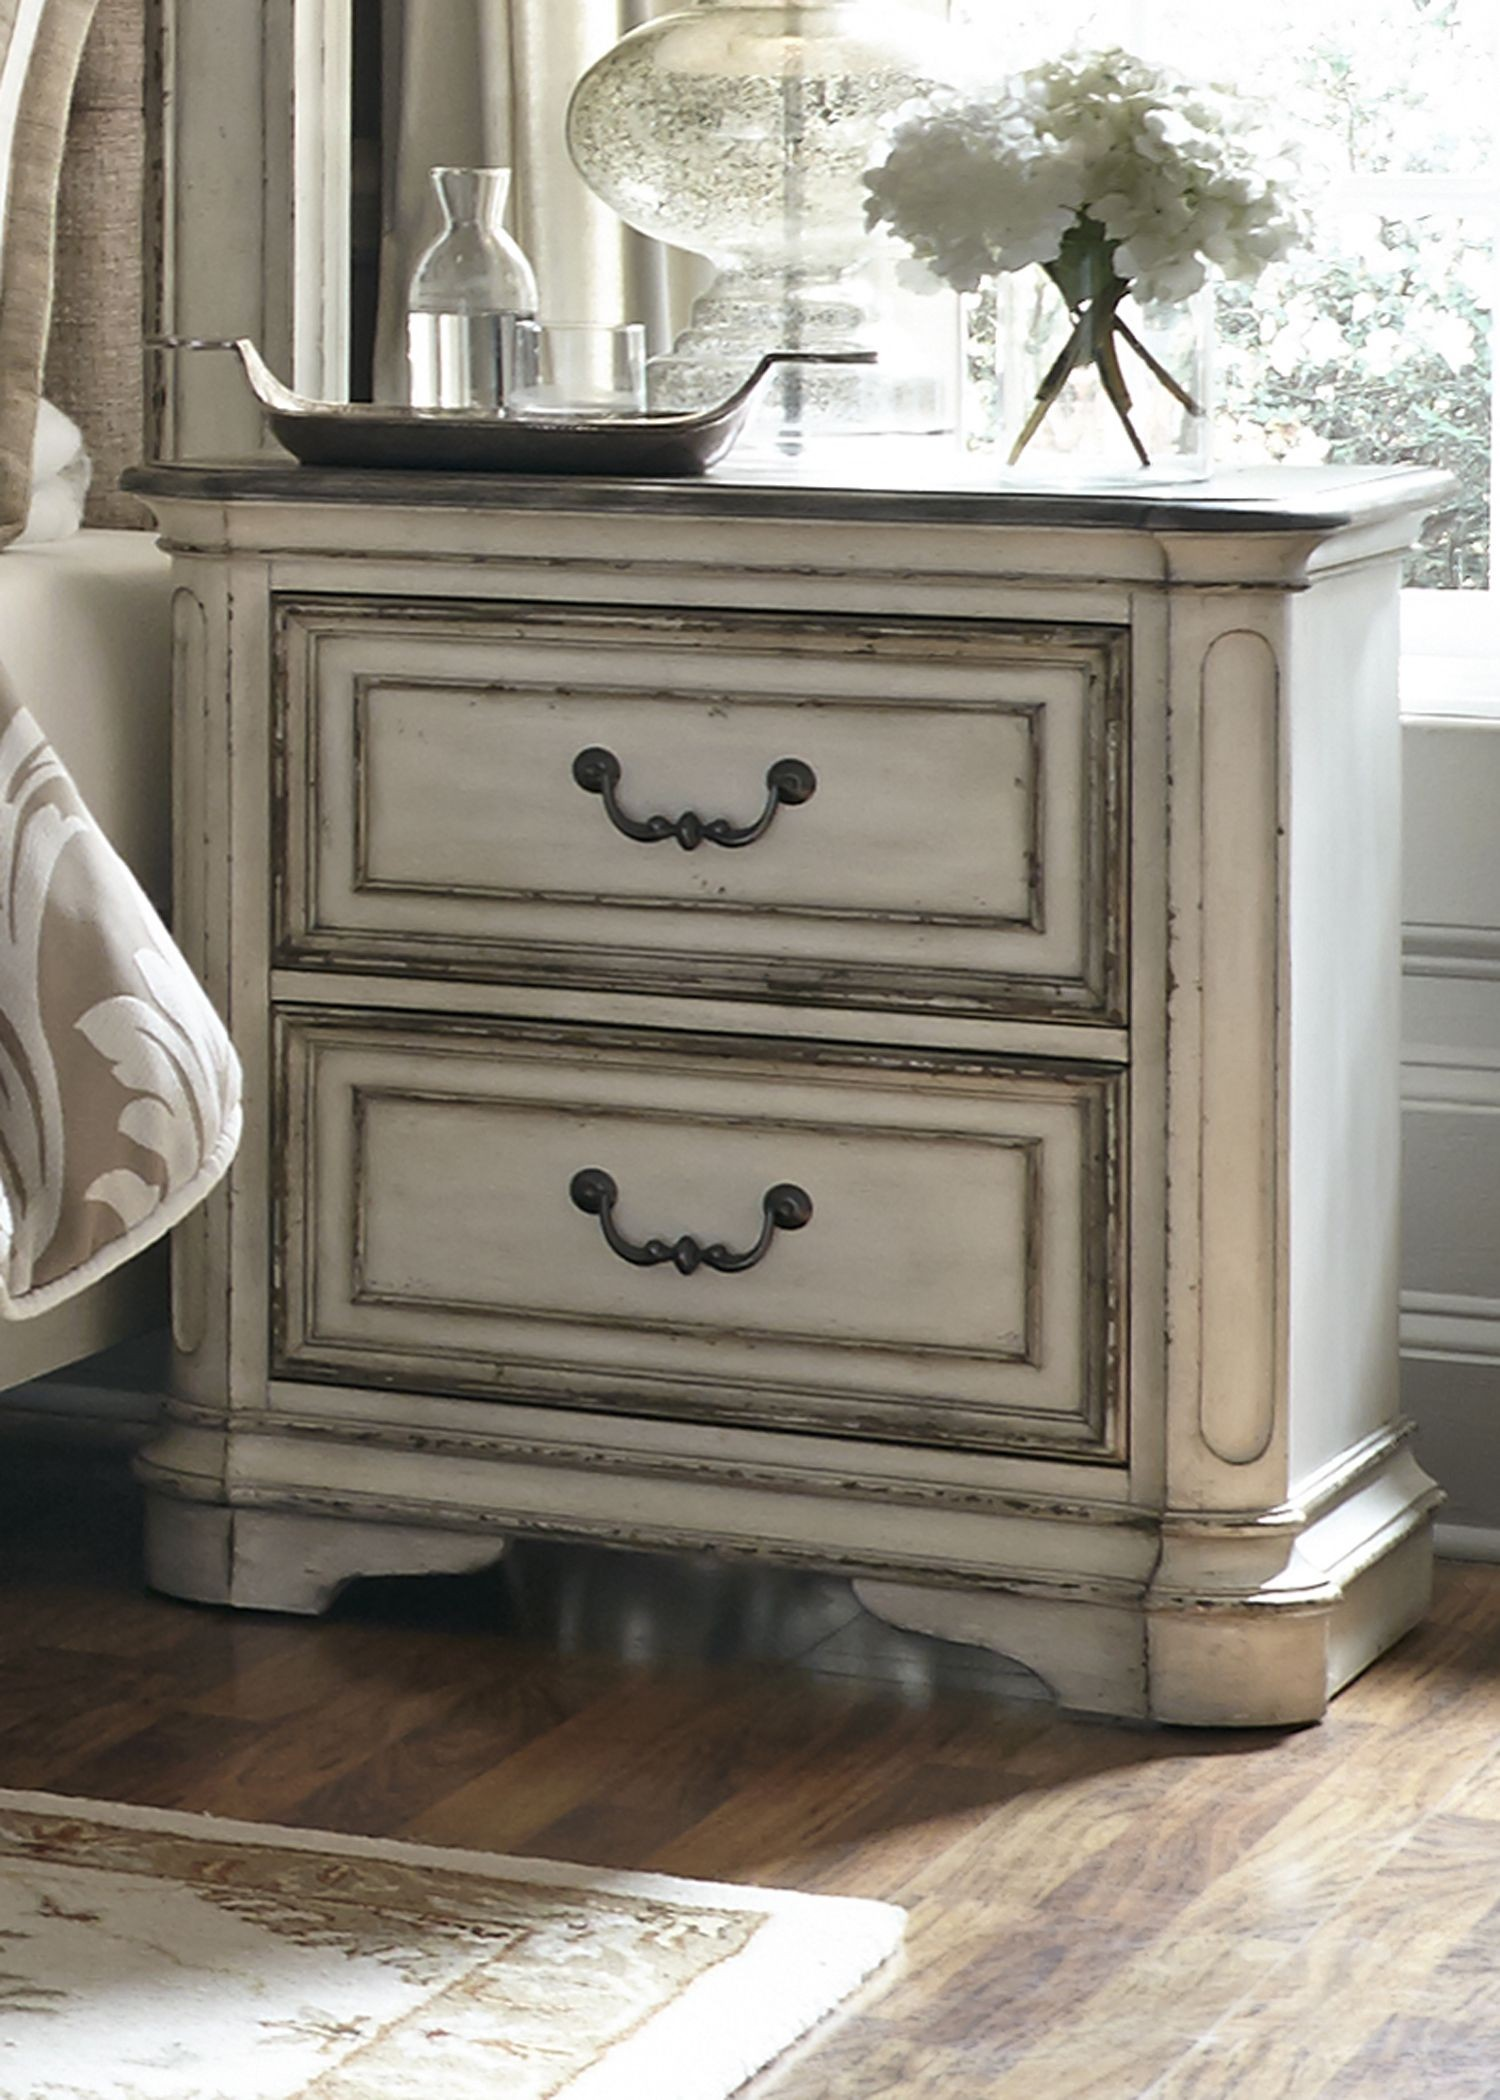 Magnolia Manor Antique White 2 Drawer Nightstand From